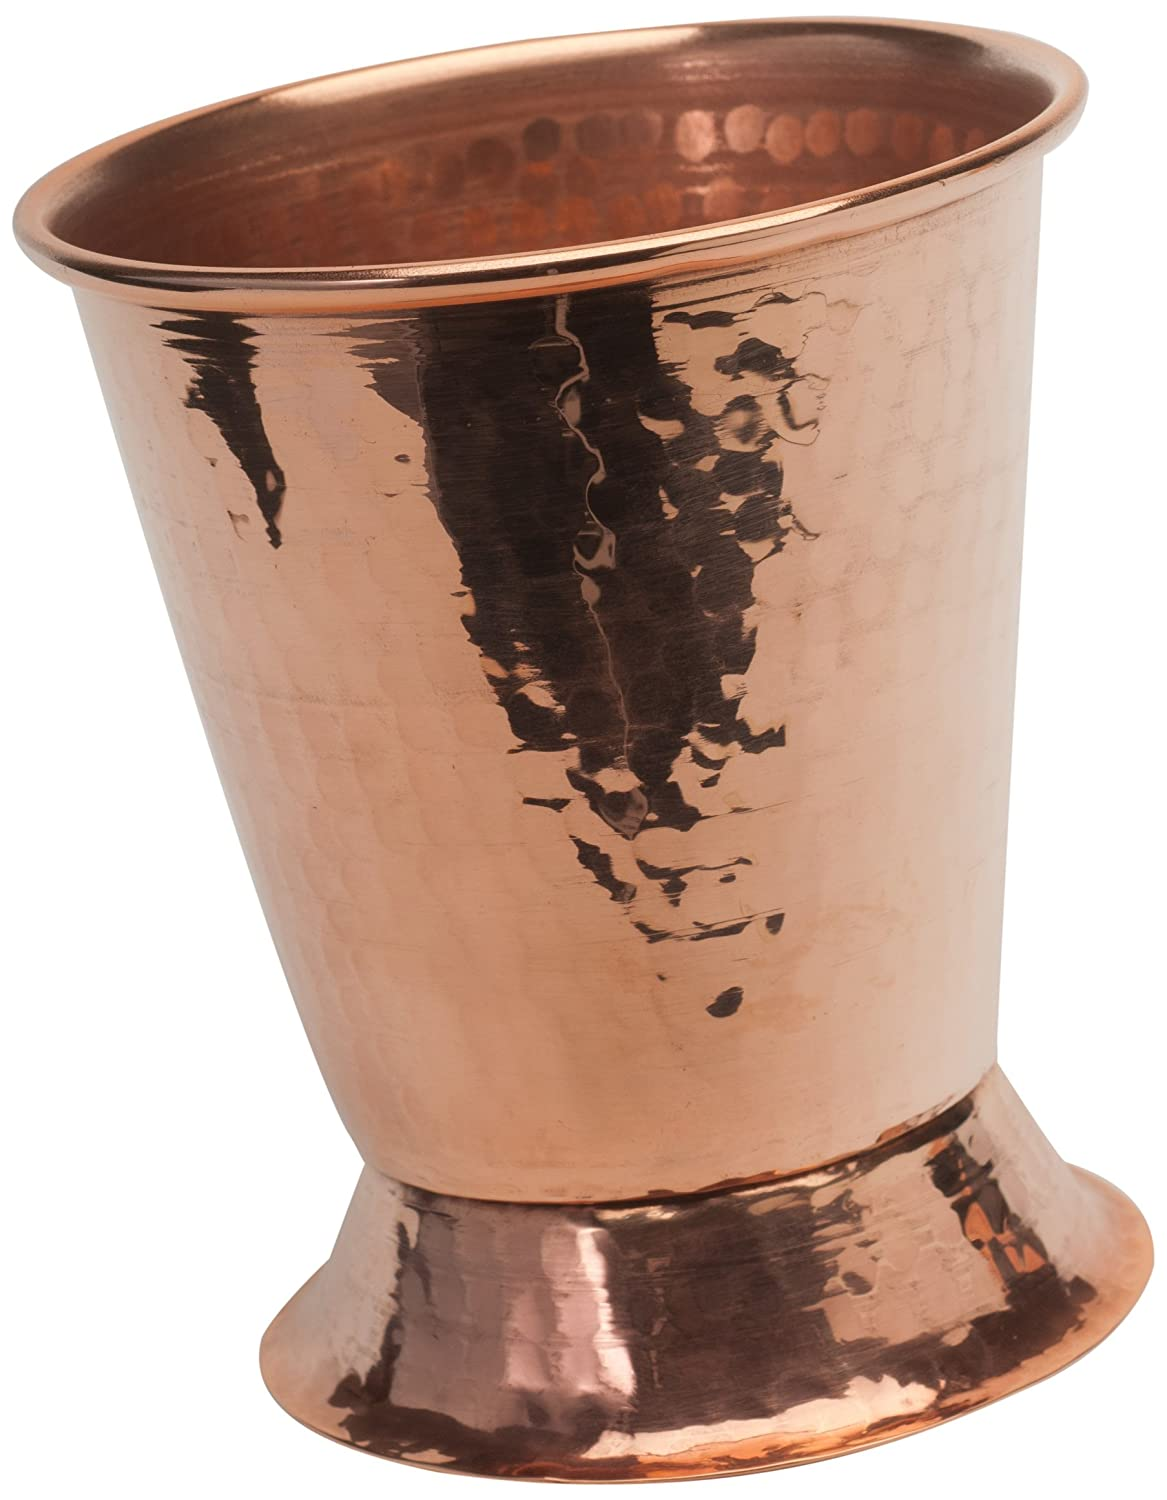 Sertodo Copper Derby Mint Julep Cup, 12 Fluid Ounce, Hammered Copper, Set of 2 CMJ-12-2